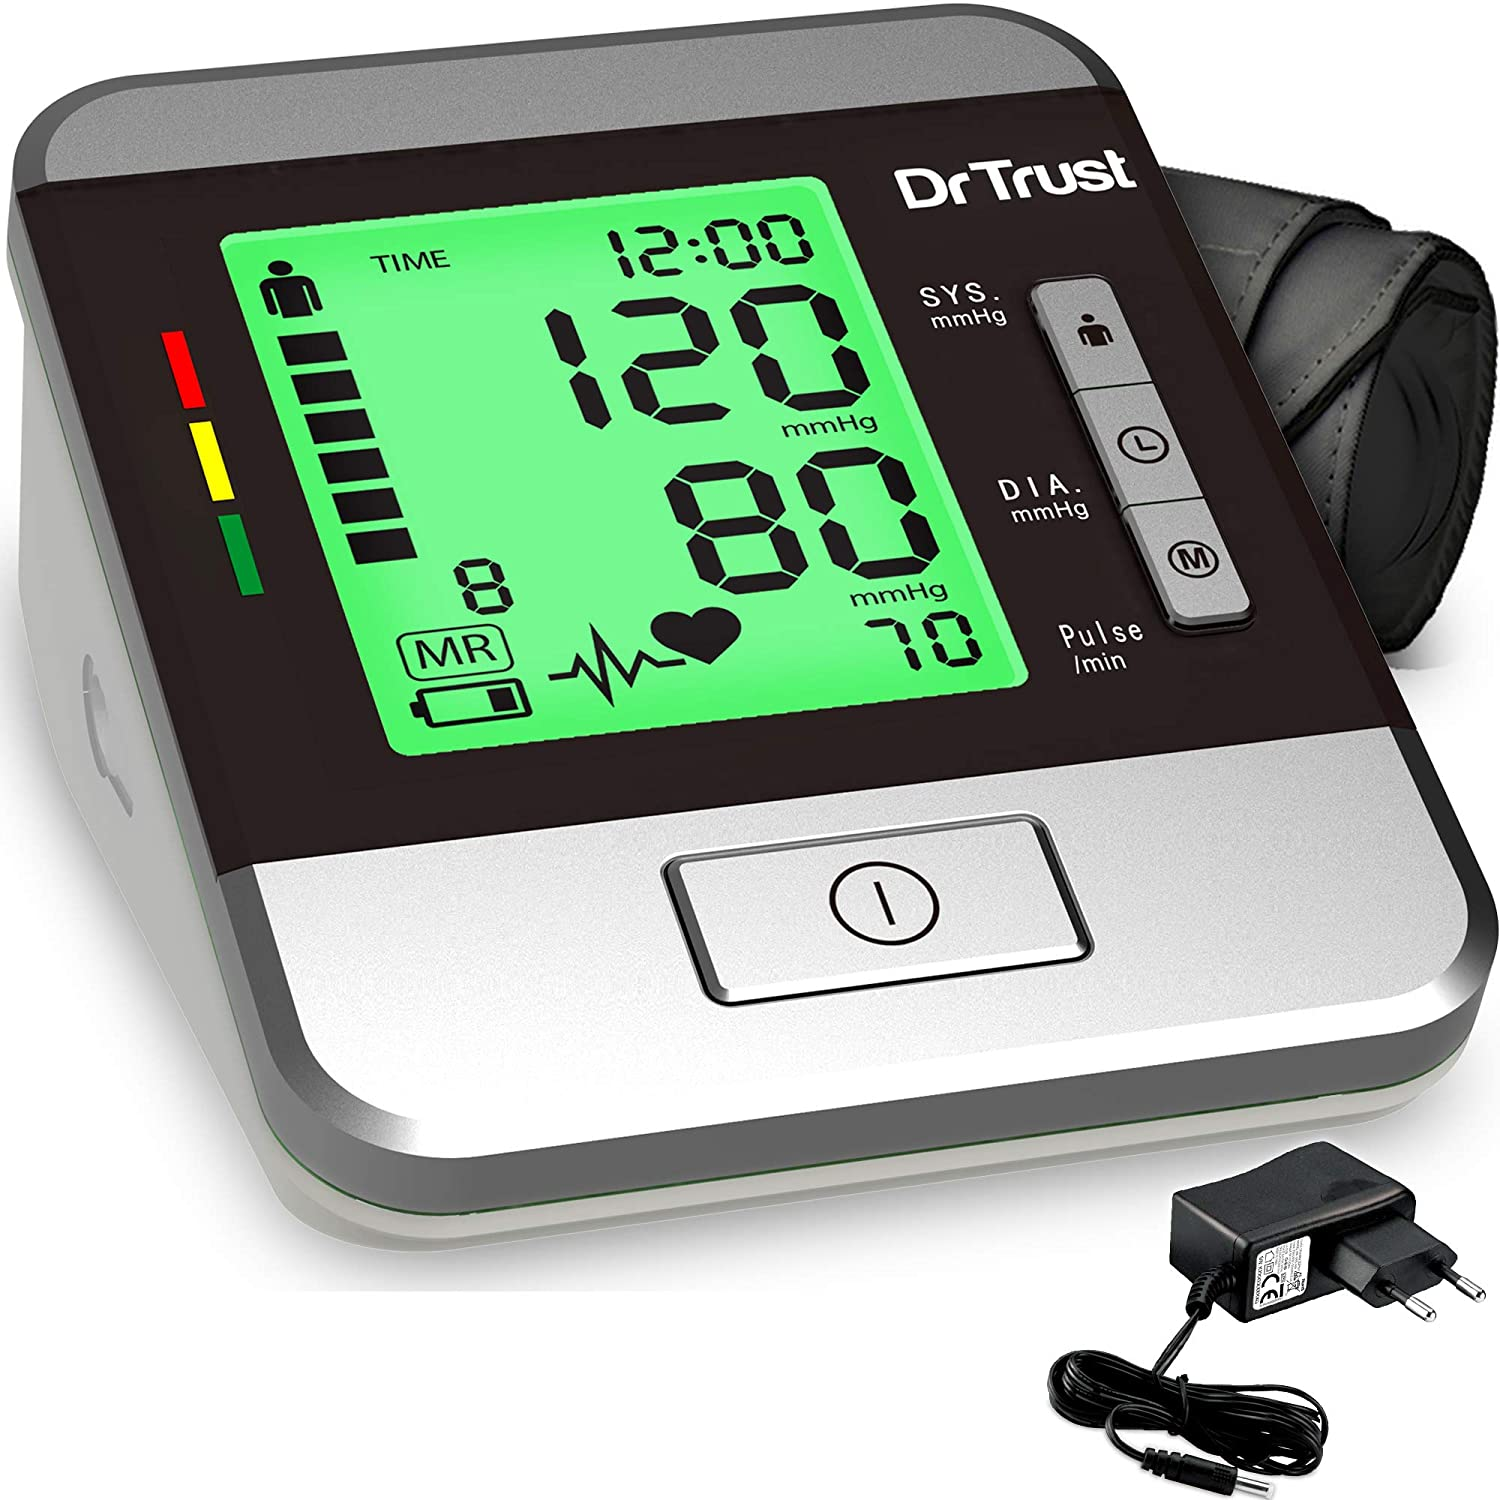 Dr. Trust Automatic Digital BP Monitor Machine with MDI technology